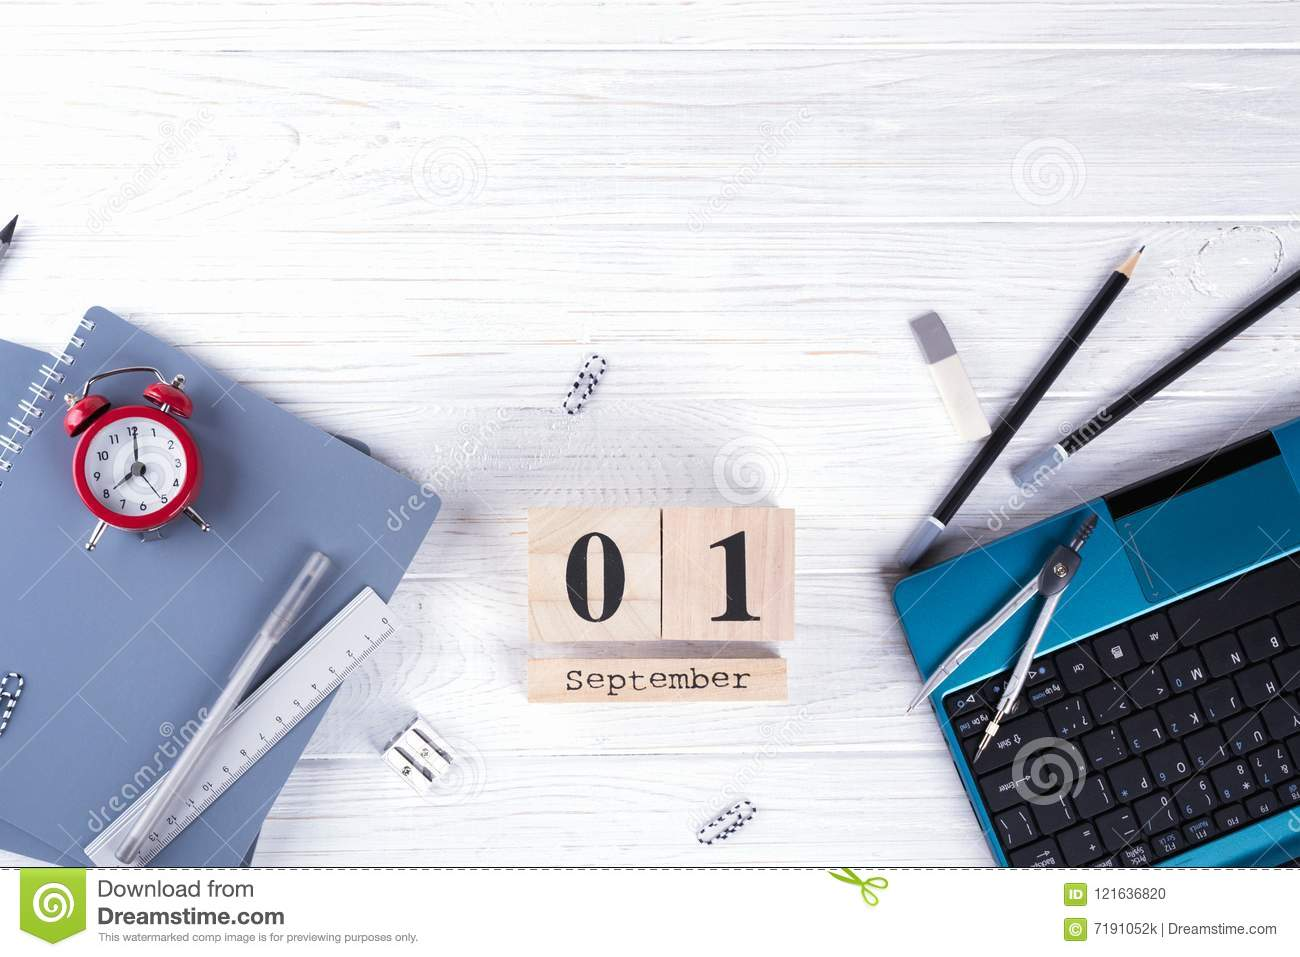 Laptop, red alarm clock and supplies, wooden calendar with date 1st September. on white desk. Back to school concept.